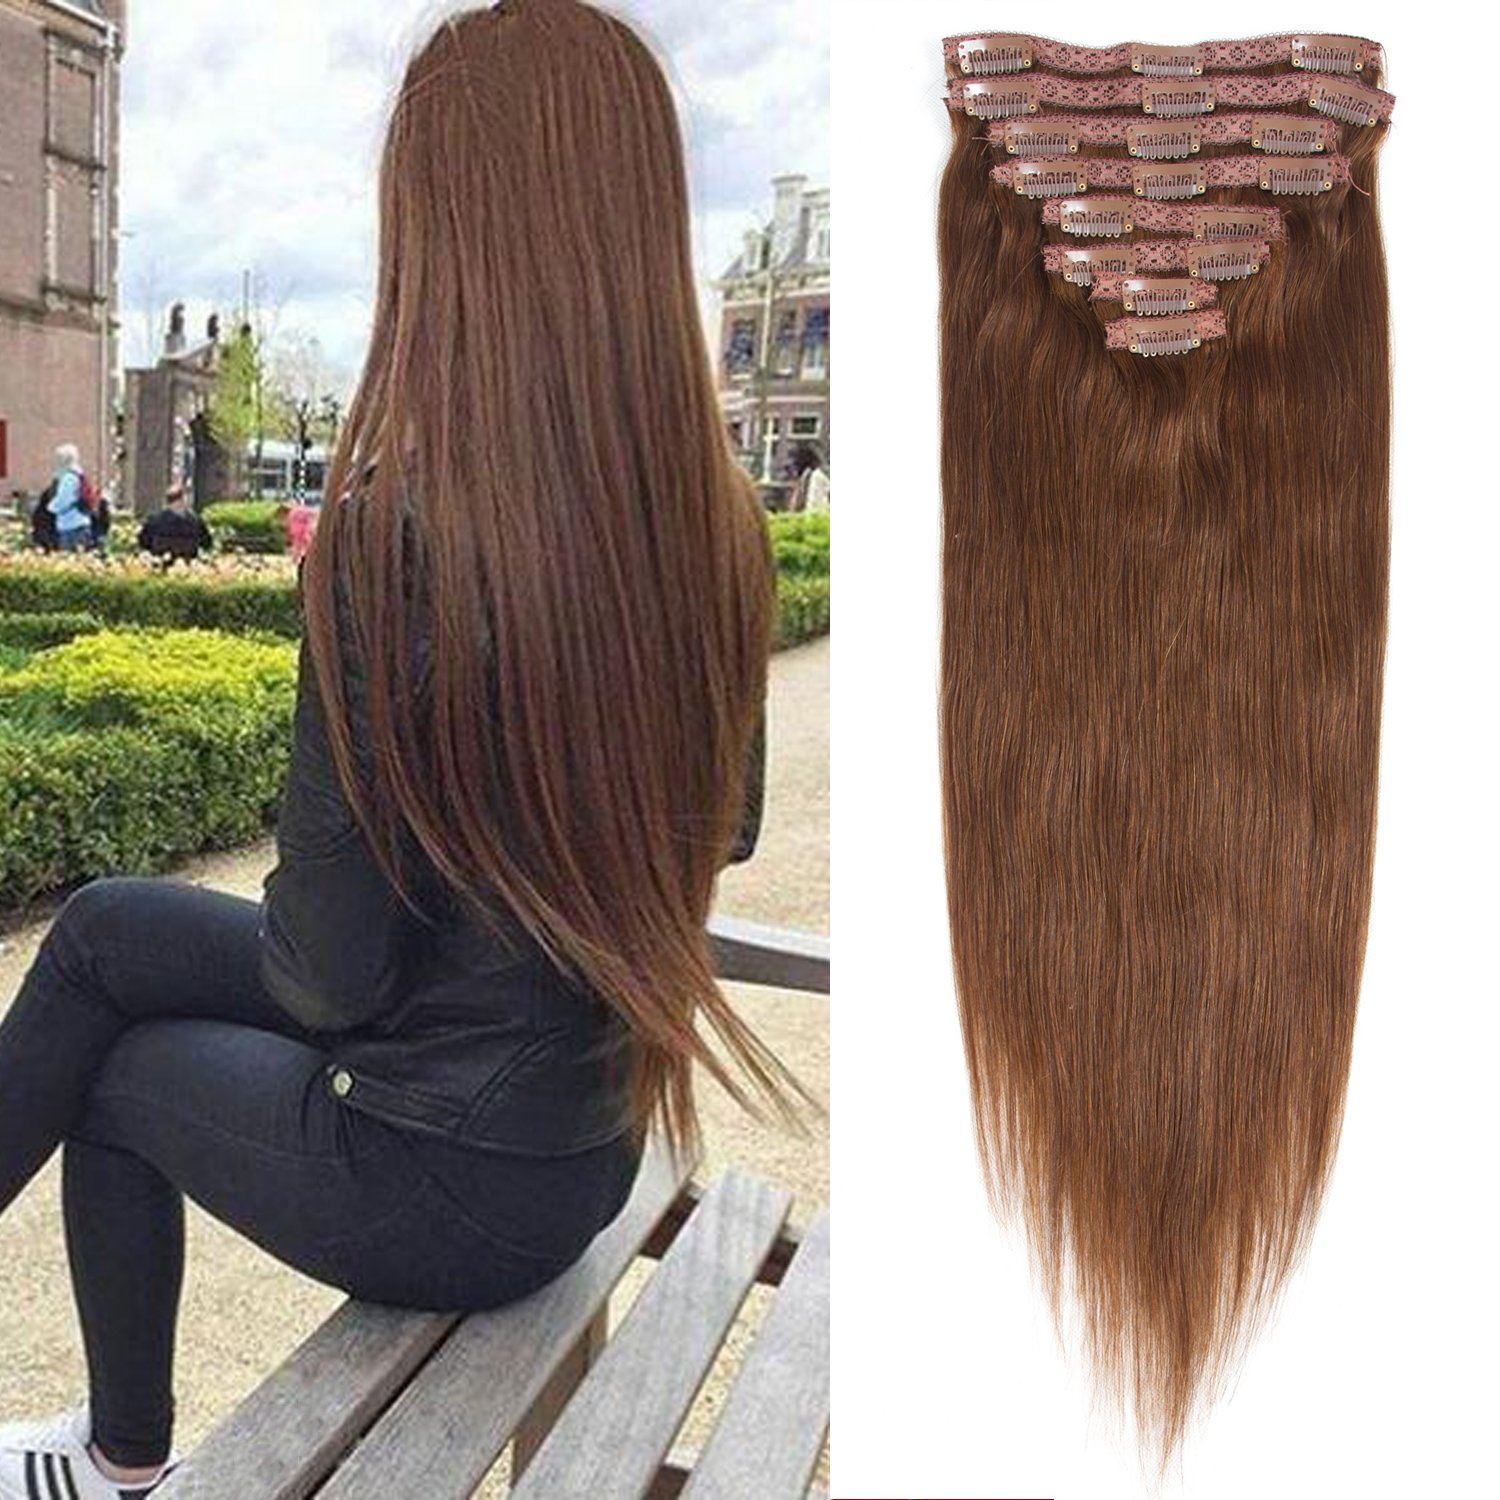 22 inch Clip in Hair Extension 7A Grade Double Weft Long Straight Hair 8 piece 18 clips Full Head 100% Remy Human Hair Extension 100g by Originea (22